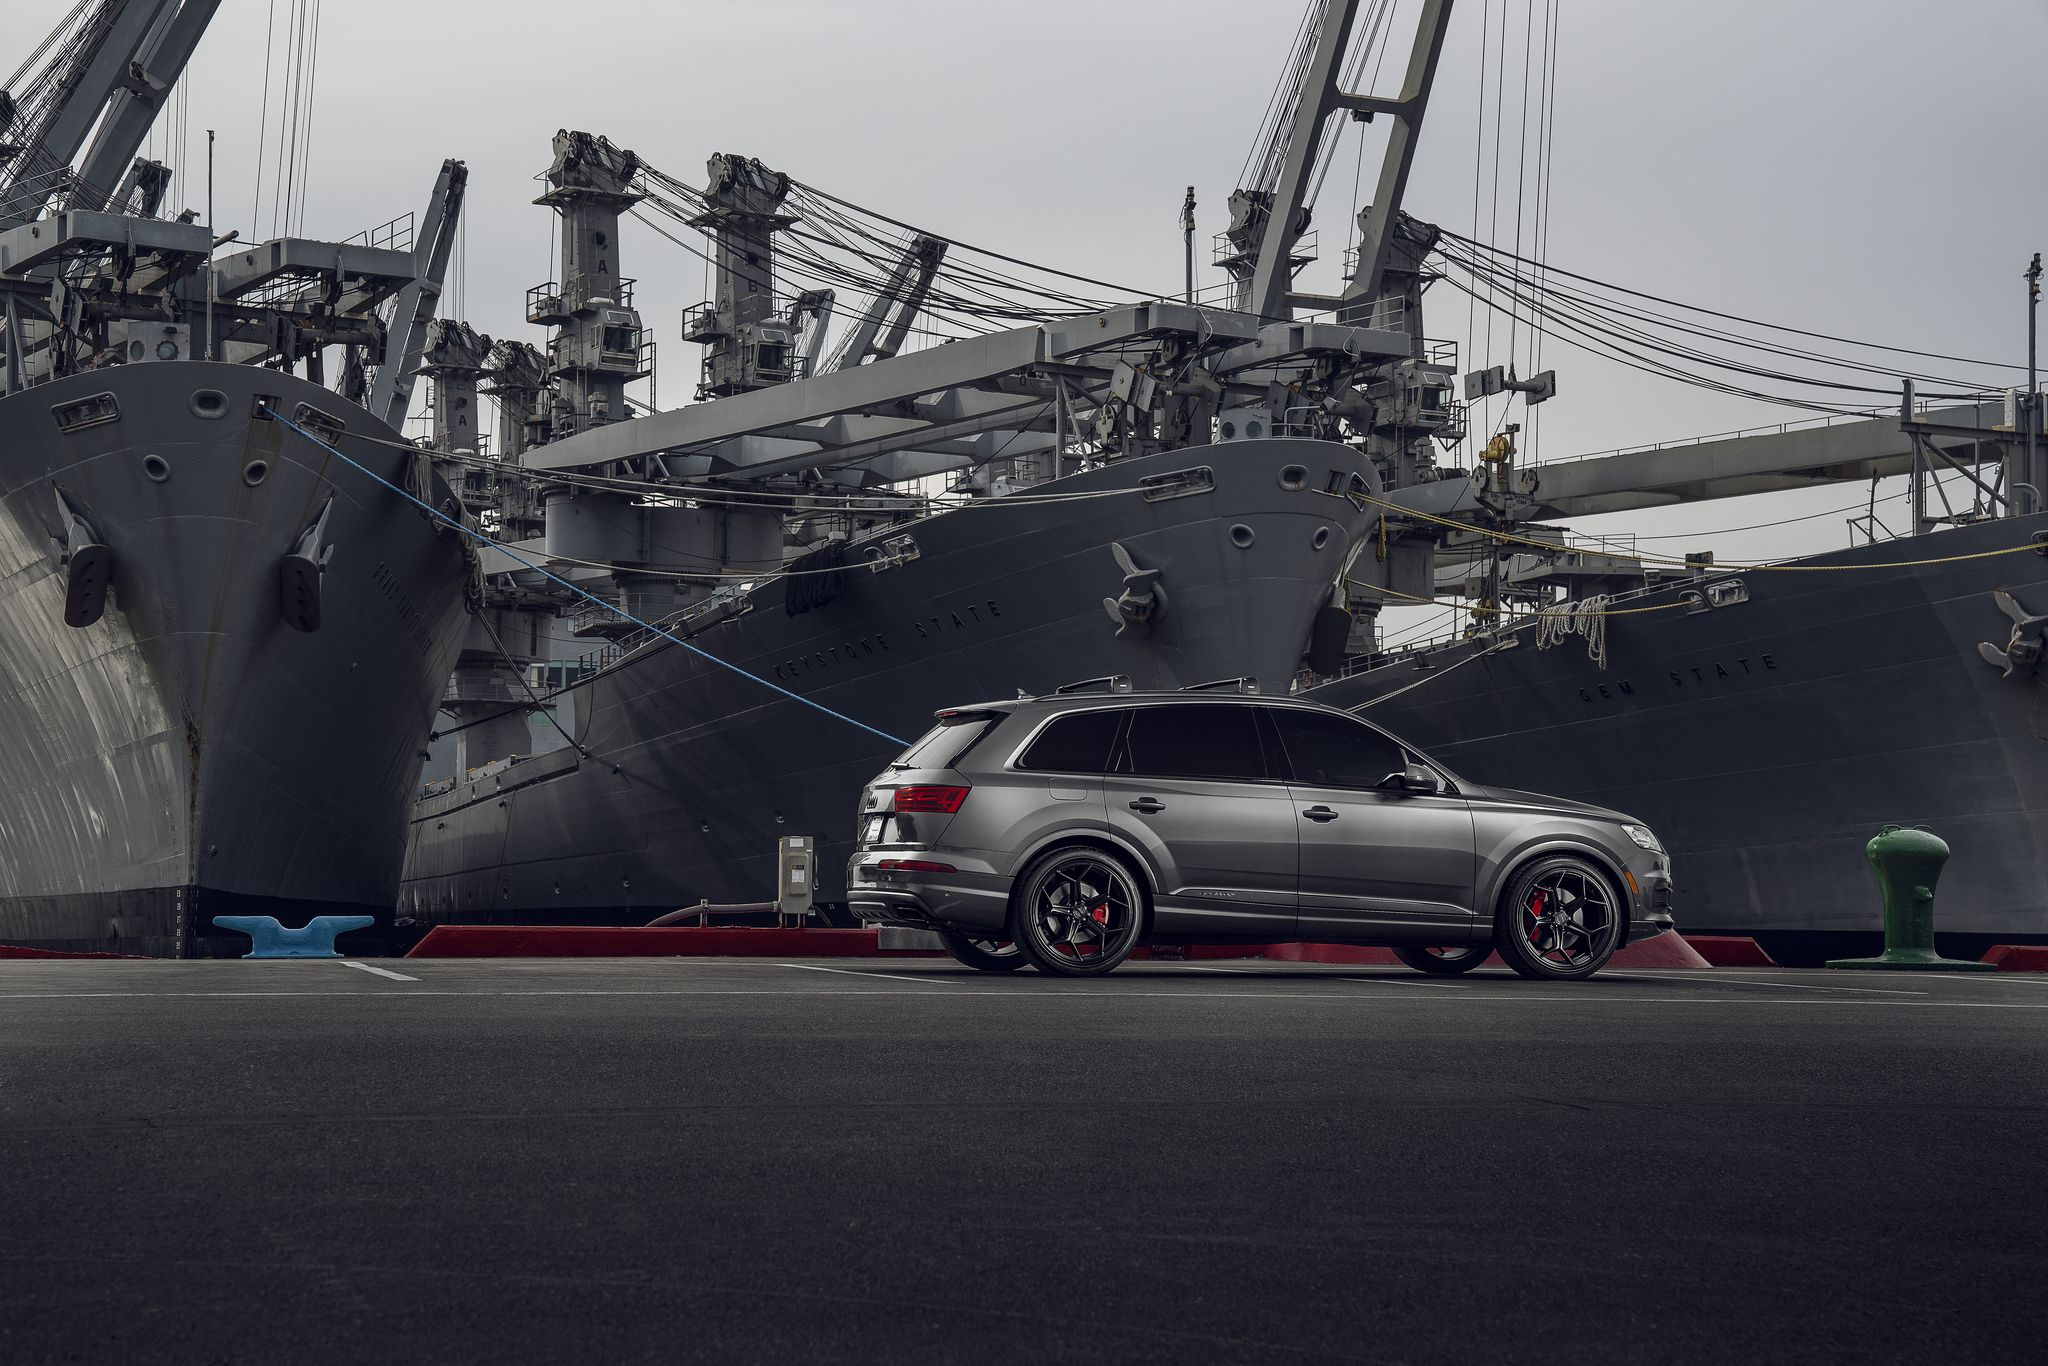 2019 Audi Q7 at military ships background